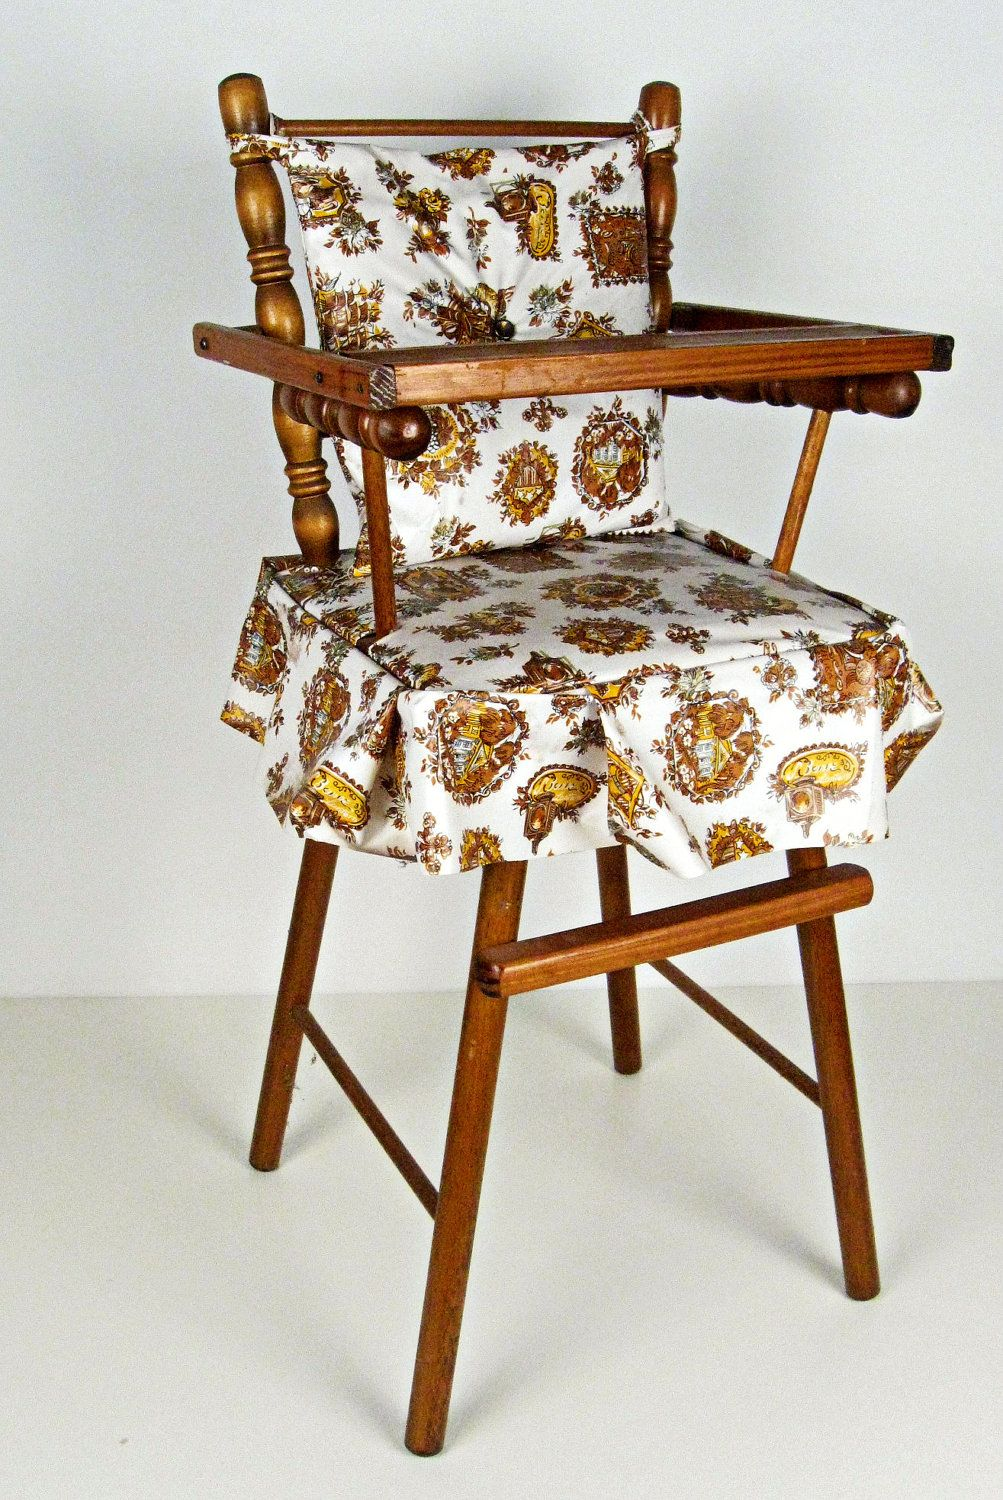 vintage wooden doll high chair - 1970s. $35.00, via Etsy. - Vintage Miniature Wood Doll High Chair Vintage Vertigo - Toys